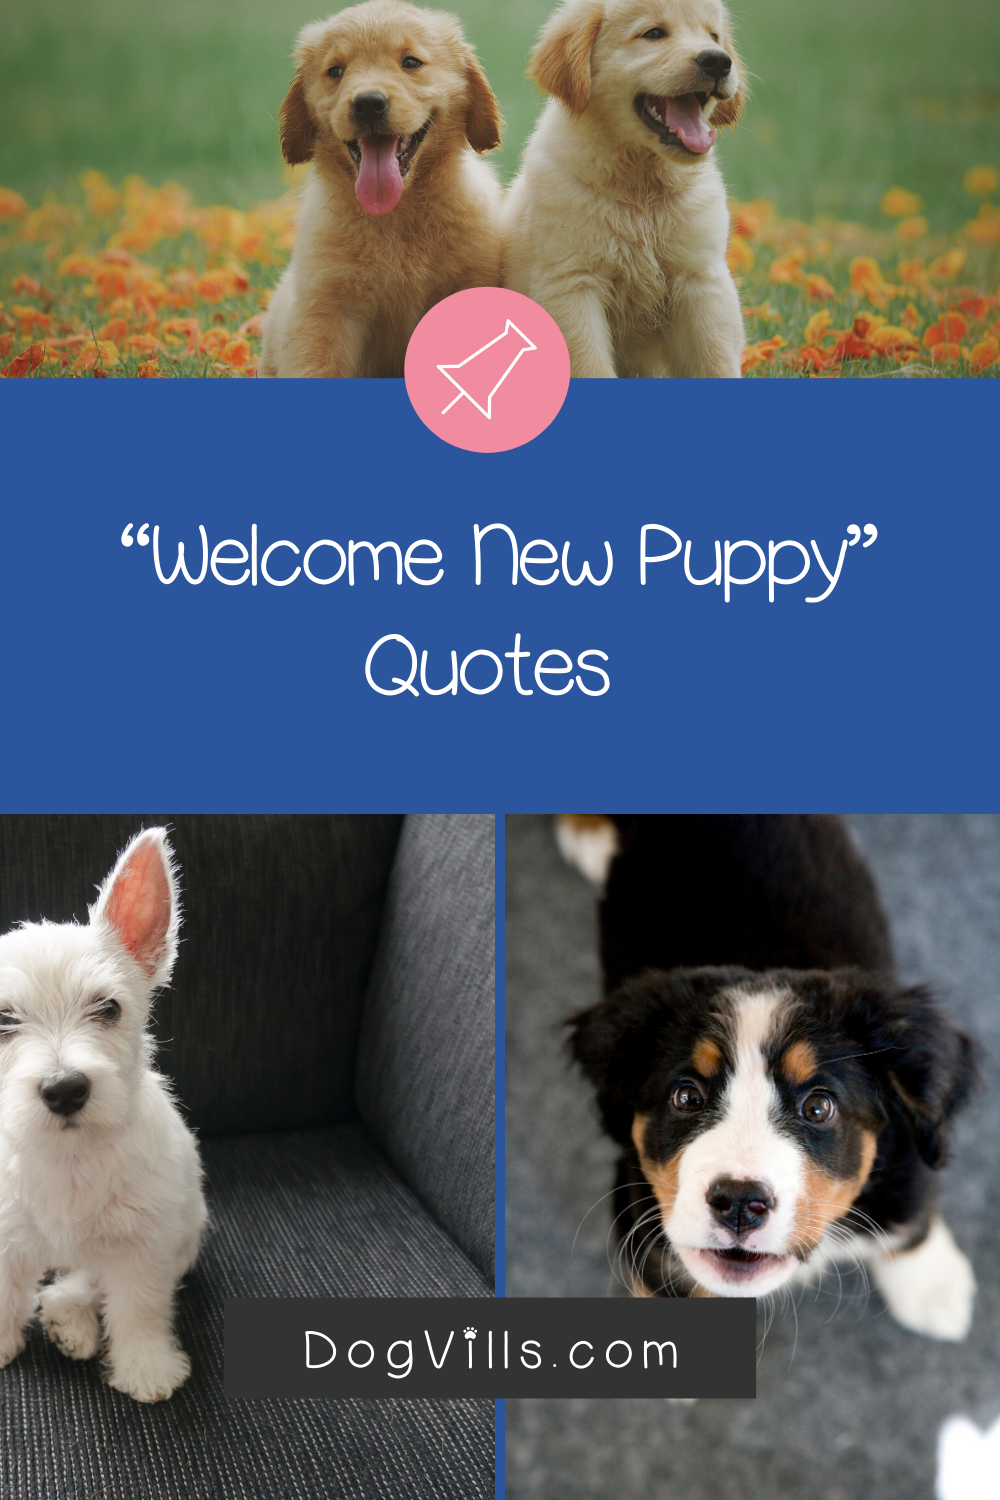 Top 10 Sweetest Welcome New Puppy Quotes Dogvills Puppy Quotes New Puppy Dog Adoption Quotes